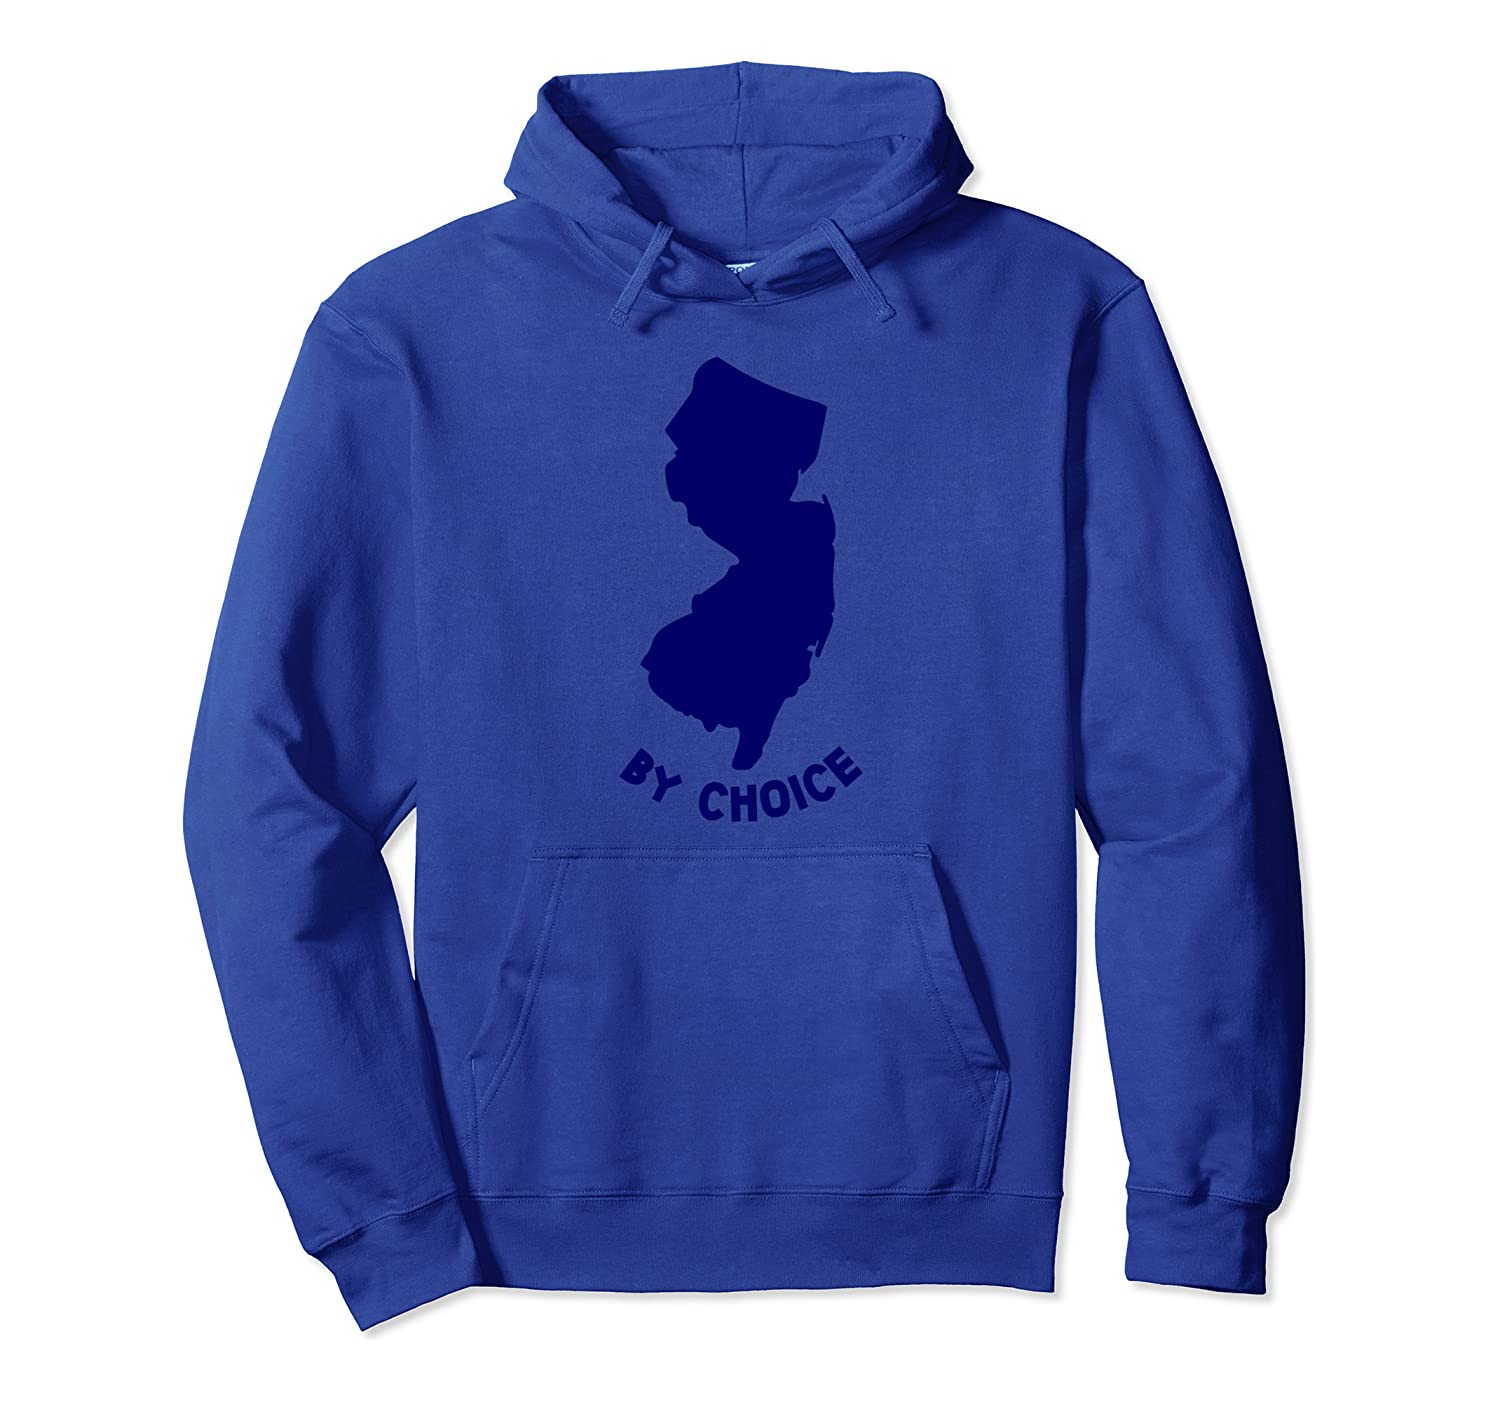 NJ By Choice - Garden State Clothing Co. Hoodie Sweatshirt